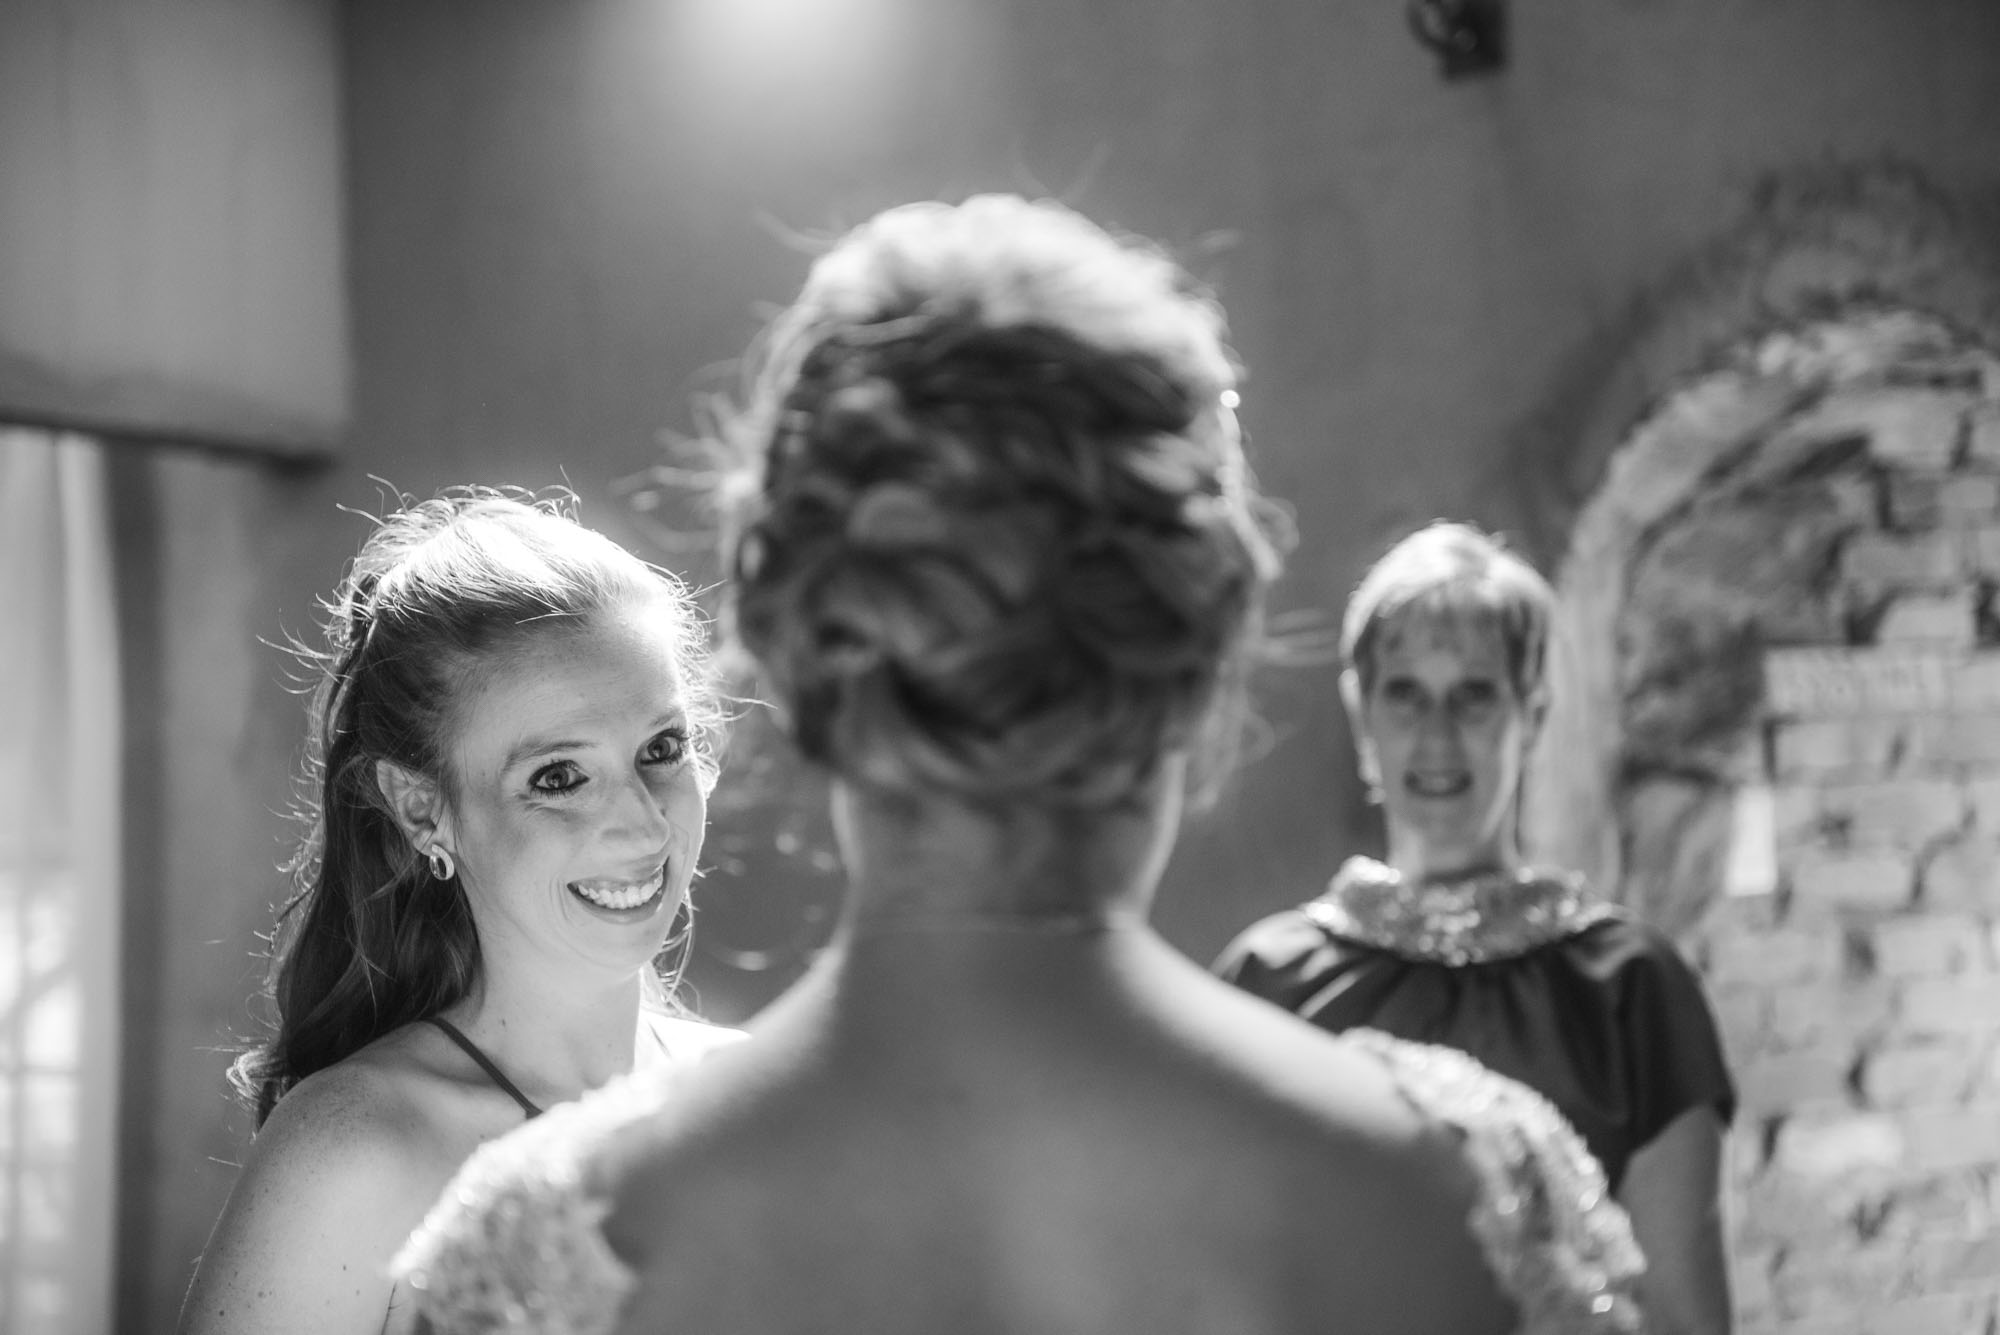 068-imperfect-perfection-wedding-venue068-imperfect-perfection-wedding-venue_a.jpg